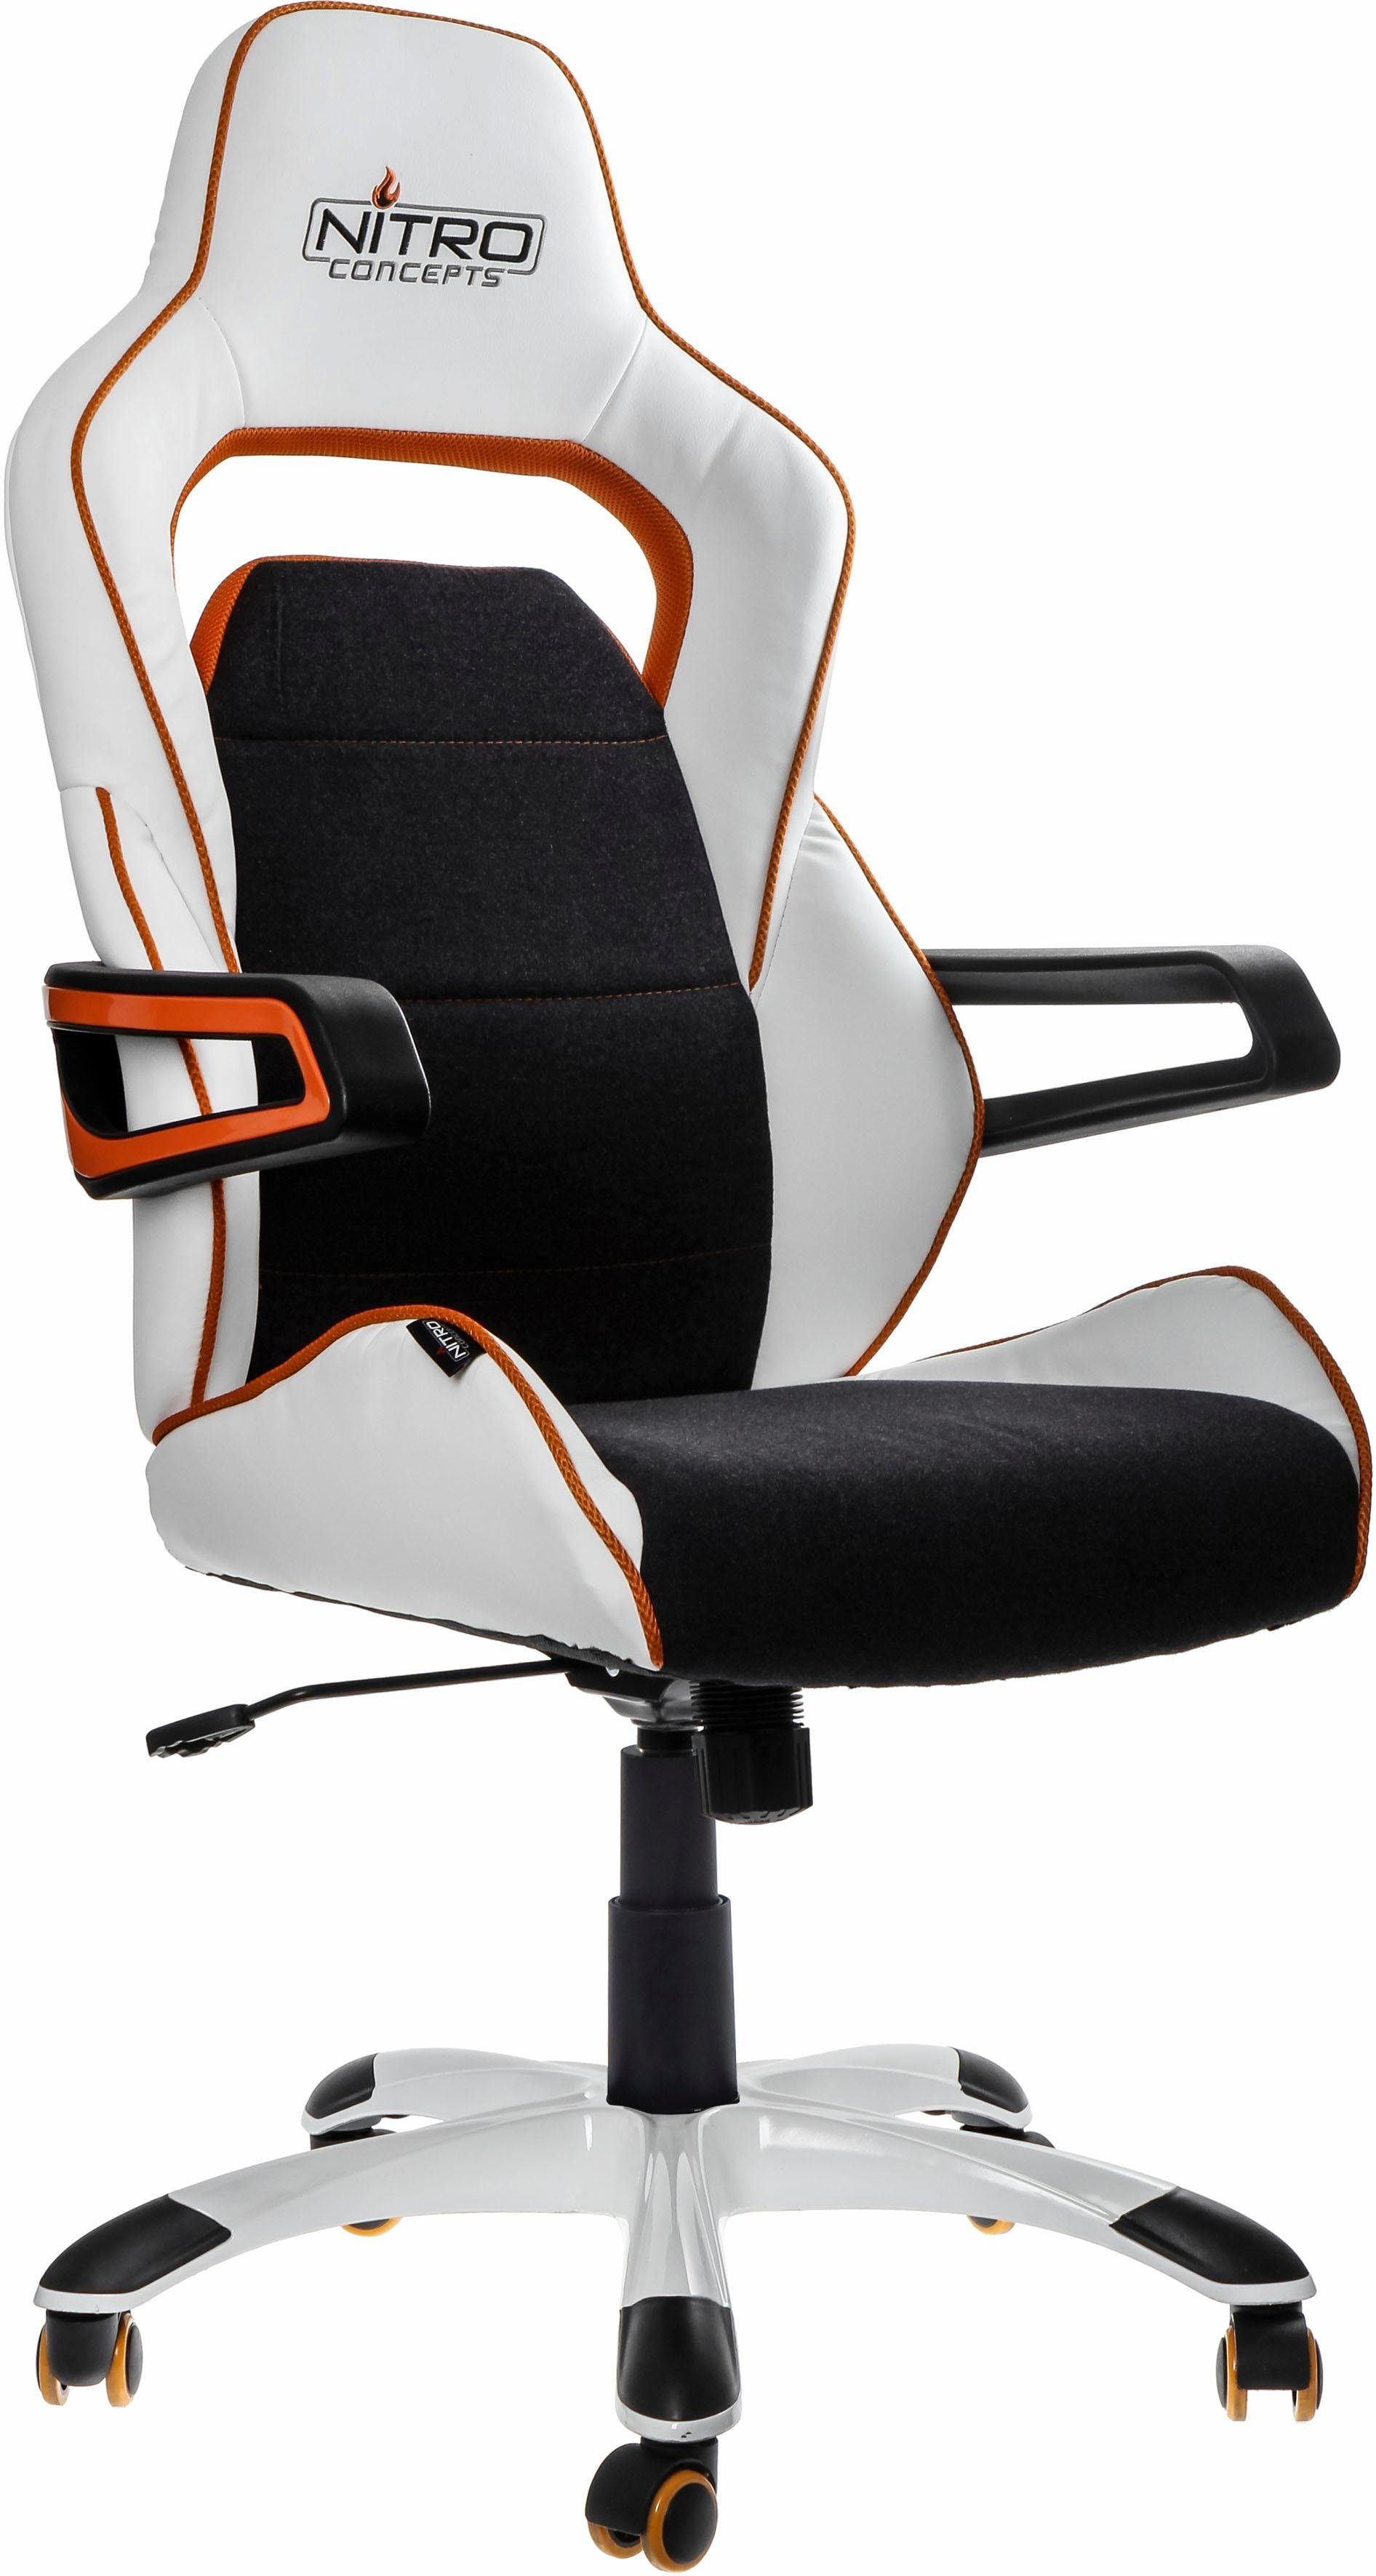 Dxr Chair Awesome Nitro Chairs E Evo Gamingstoel With Race Game